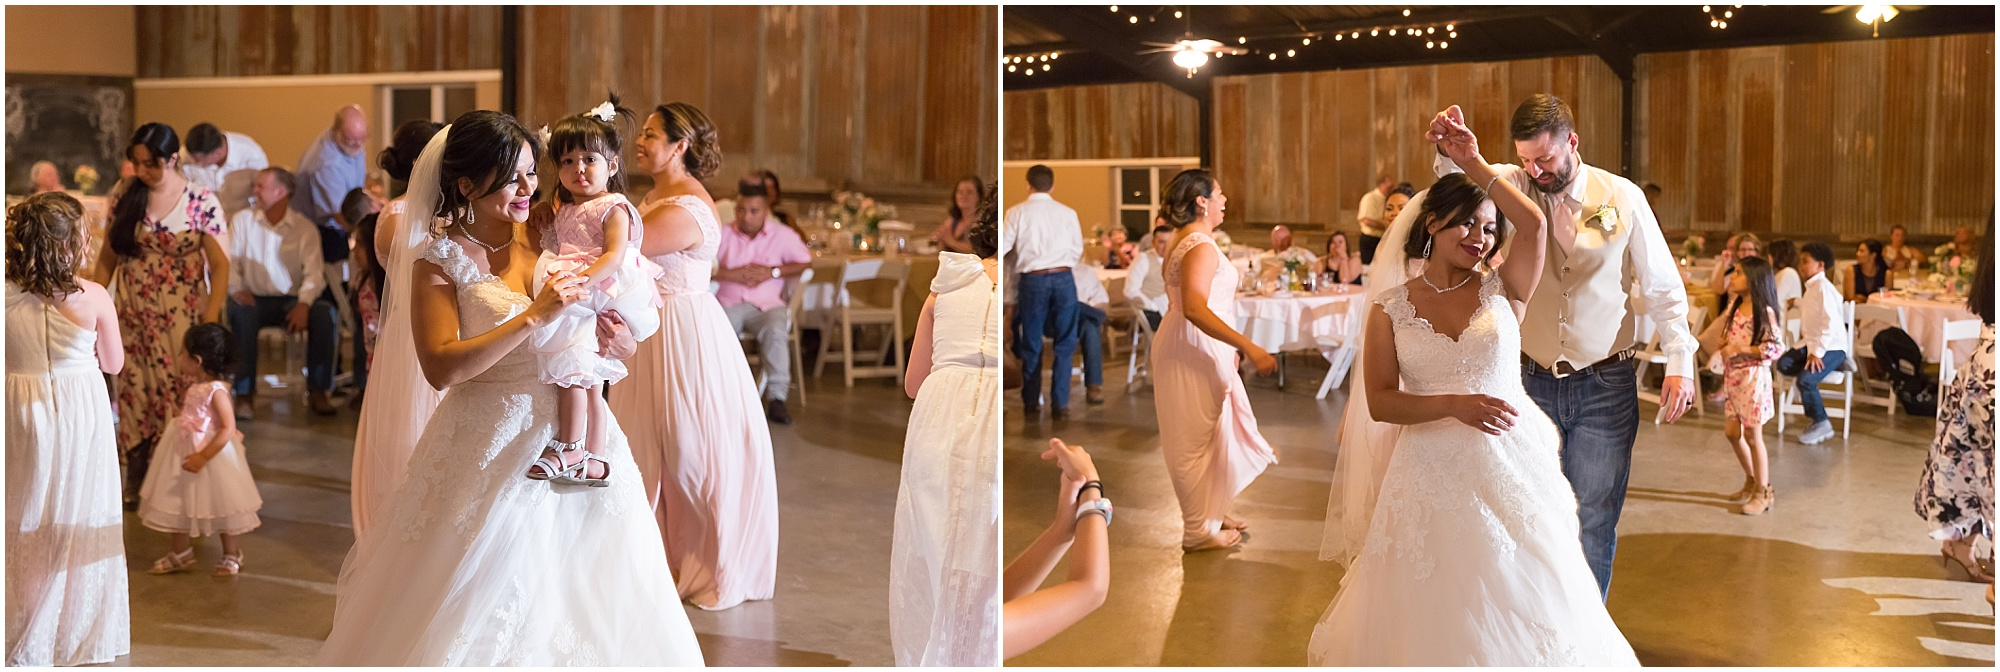 A bride and groom dance at their wedding reception at Rustic Acres in Belton, Texas - Rustic wedding at Rustic Acres in Belton, Texas - Jason & Melaina Photography - www.jasonandmelaina.com